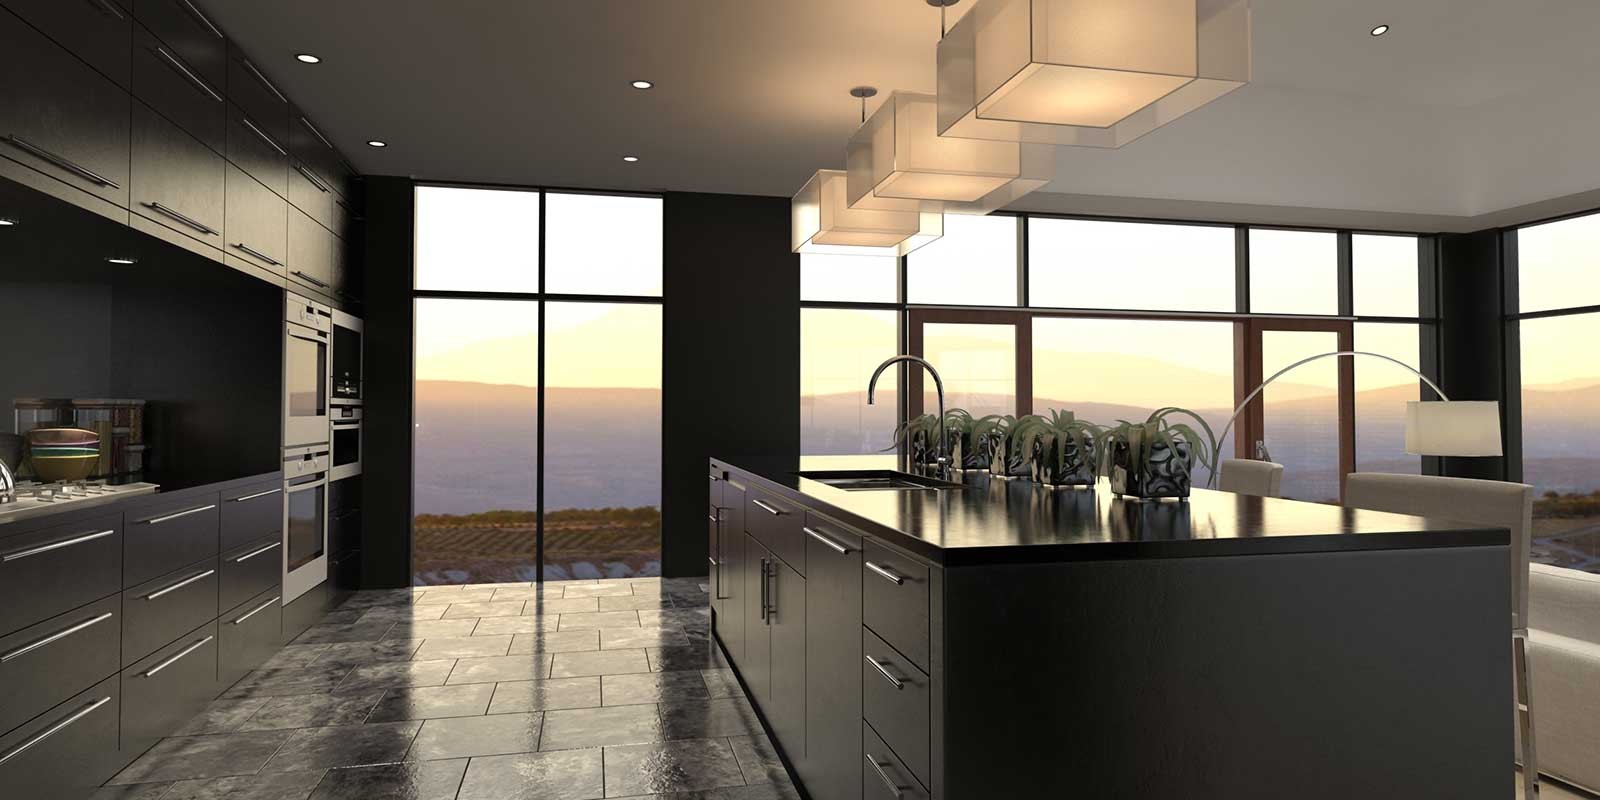 Contemporary, stylish kitchen design and fitting by Woodbrook Designs of Monmouth